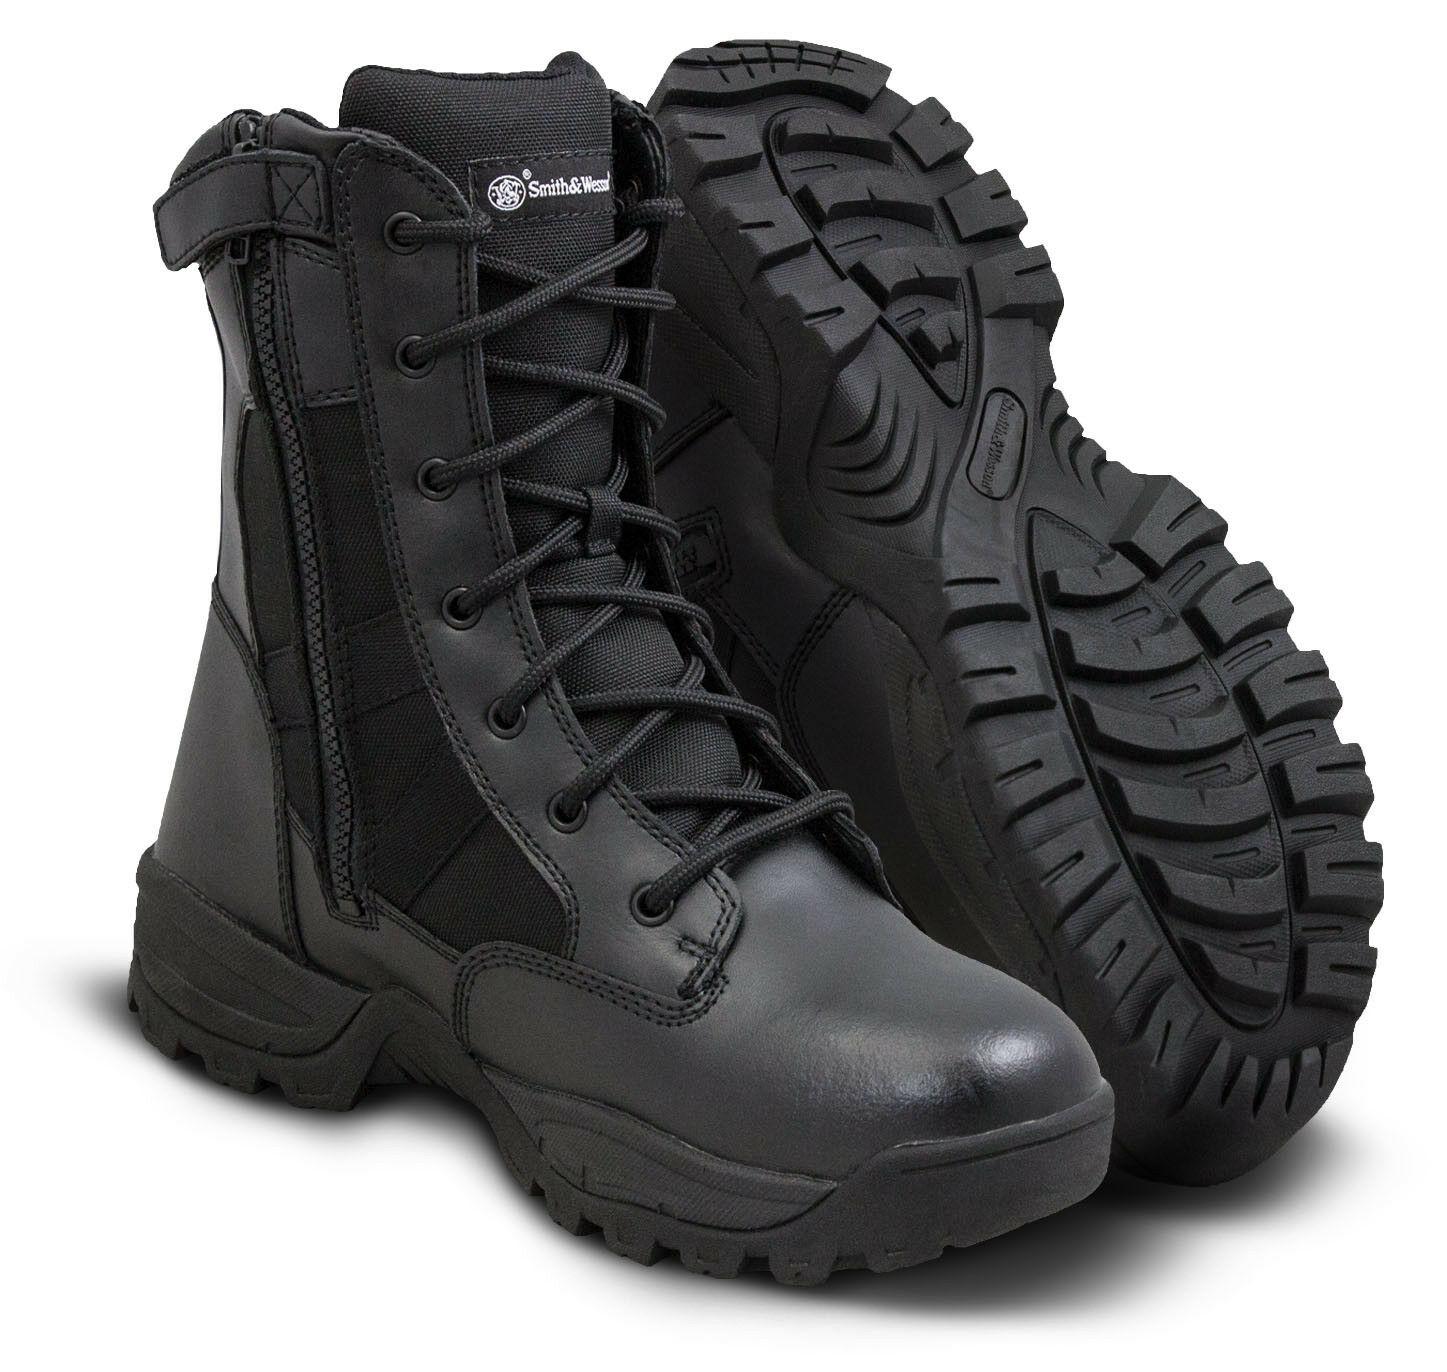 Smith & Wesson Breach 2.0 Impermeable 8  Cremallera Lateral botas Negras